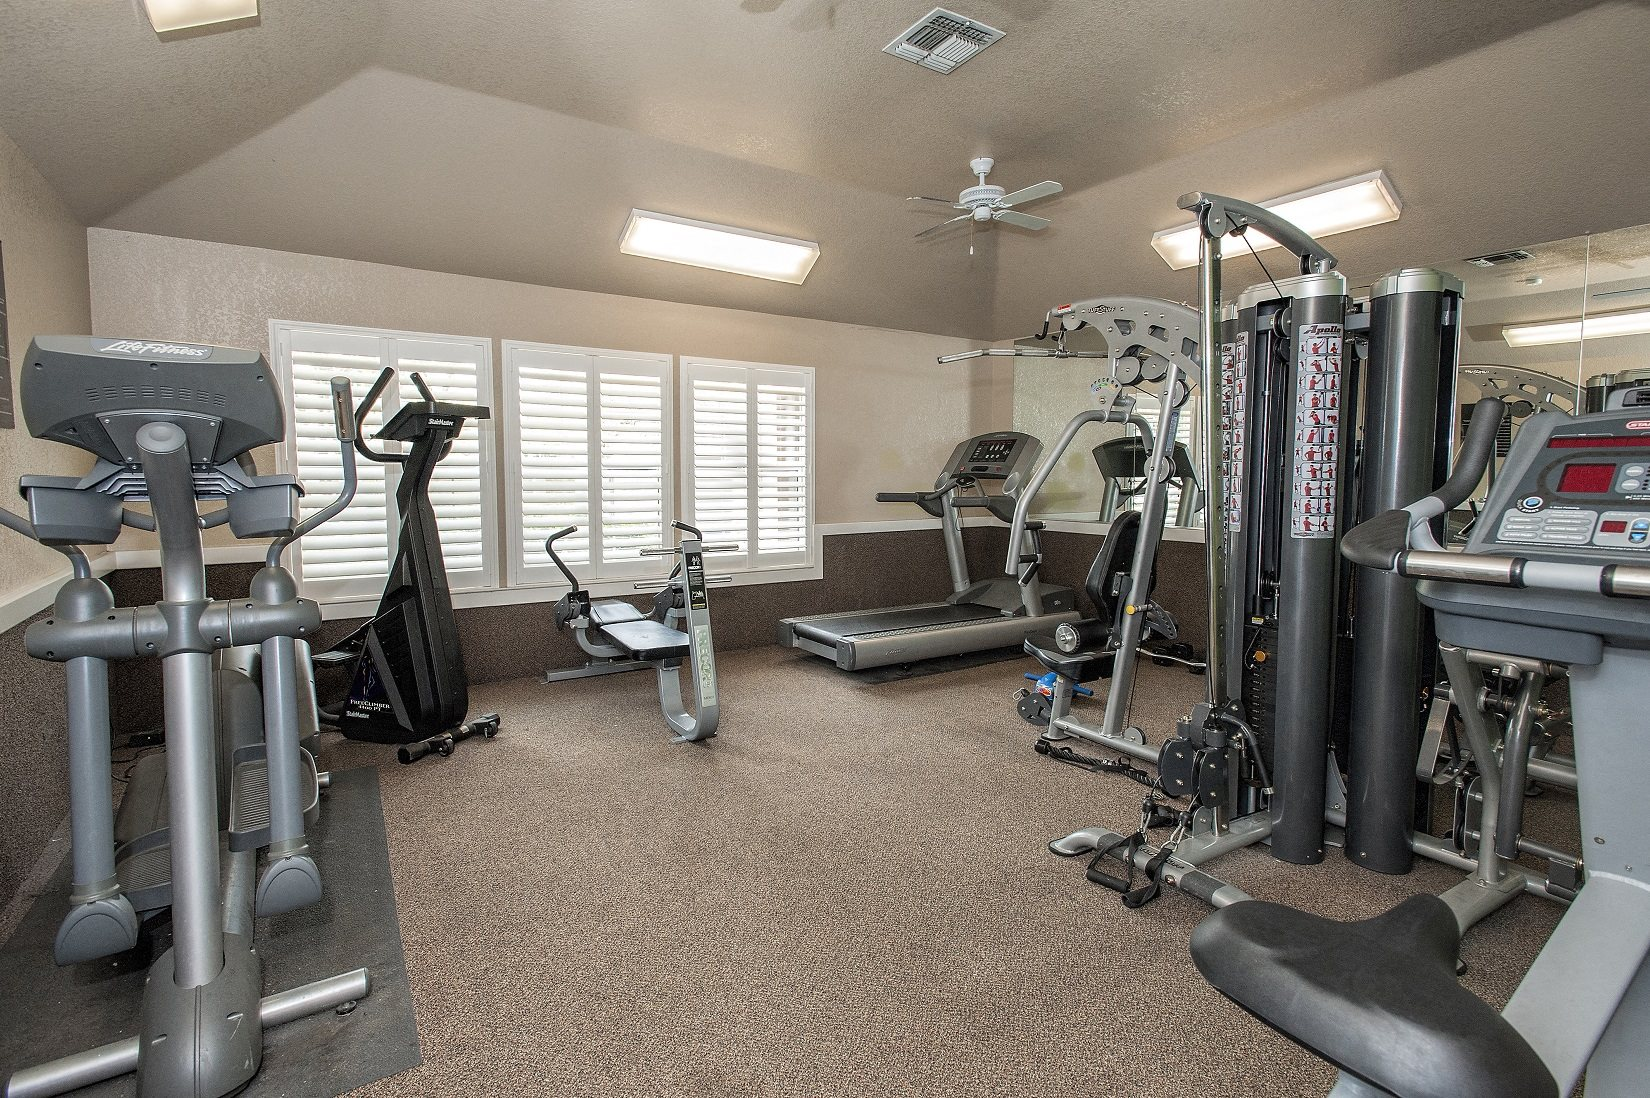 Canterbury Downs Fitness Center & Equipment